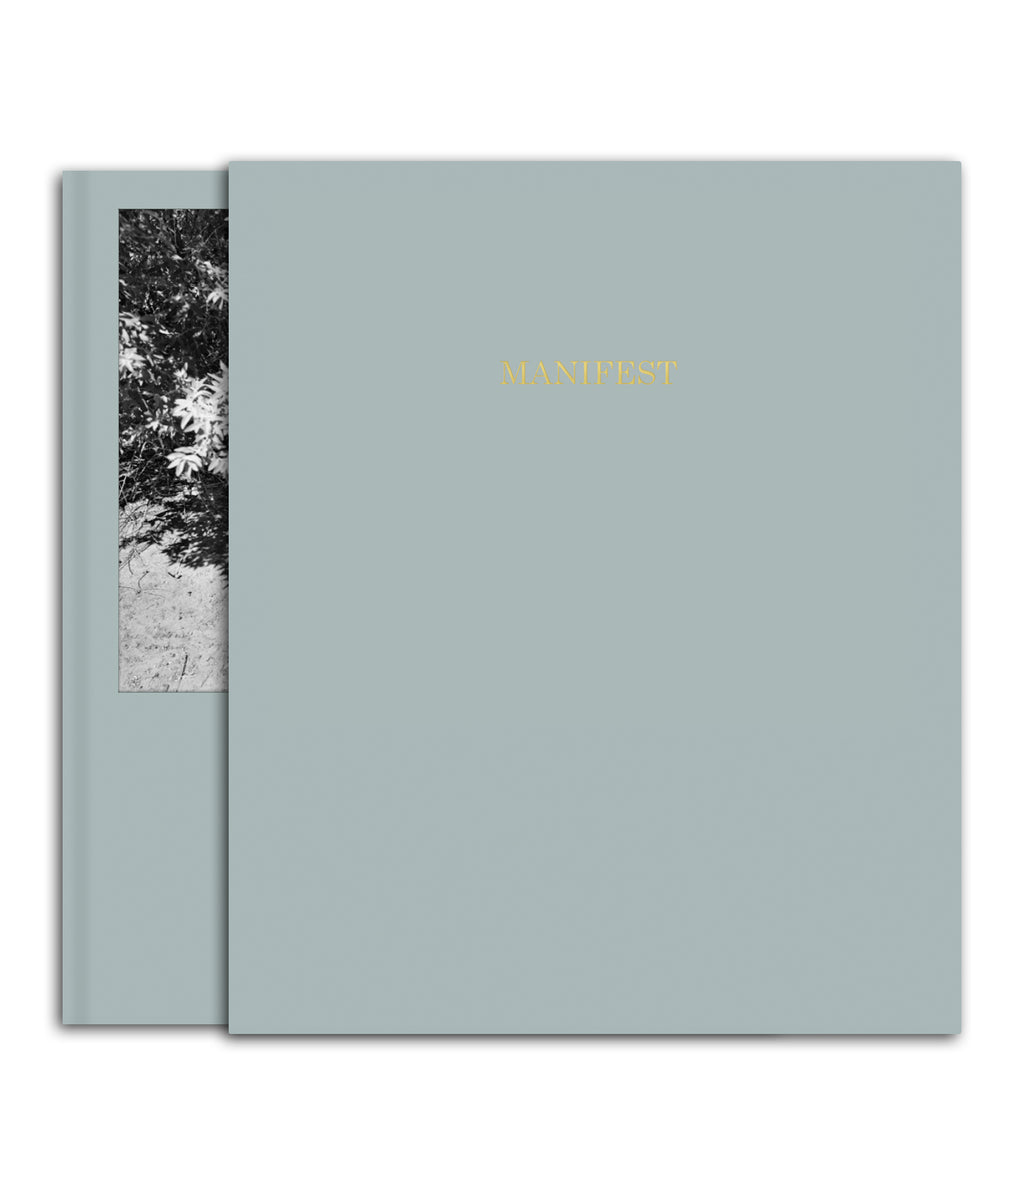 Manifest - Special Edition Slipcase with Print